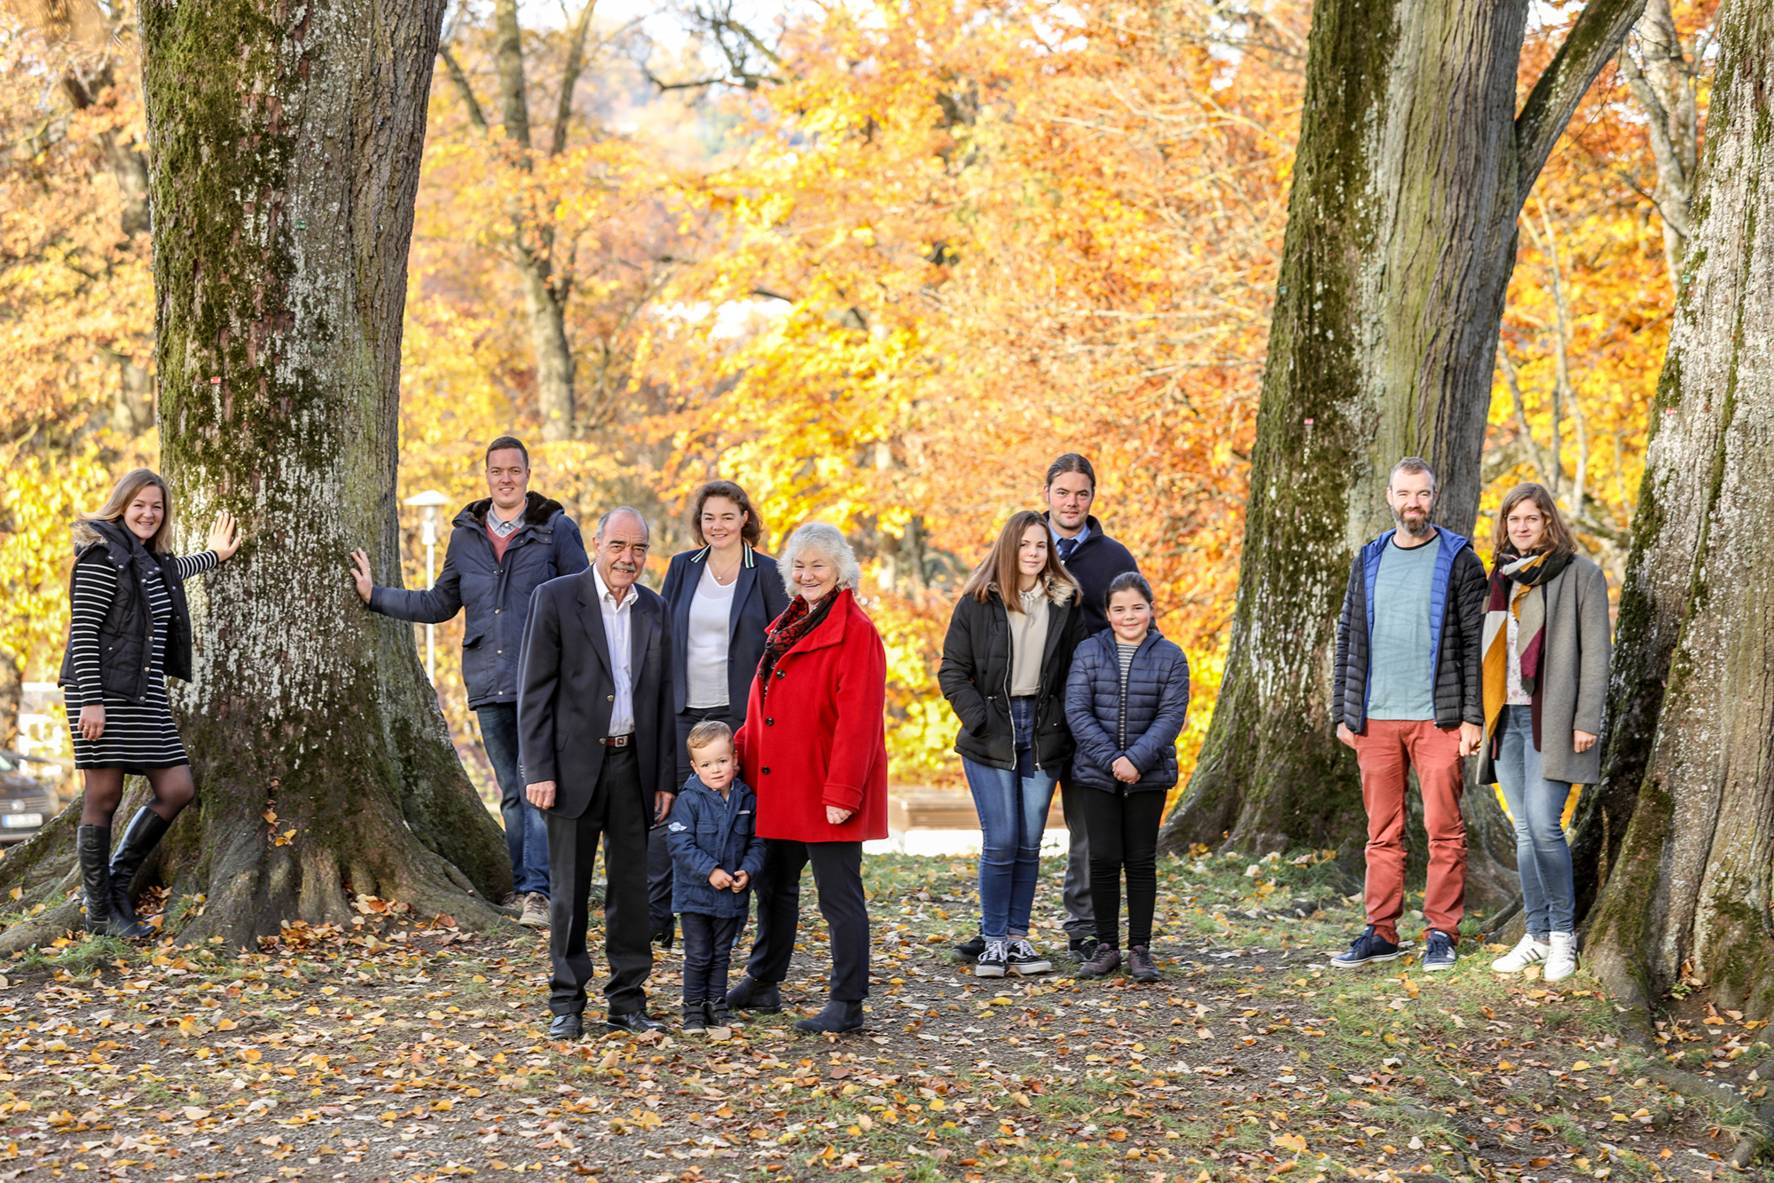 Nico_Bergmann_Photo_Family_001